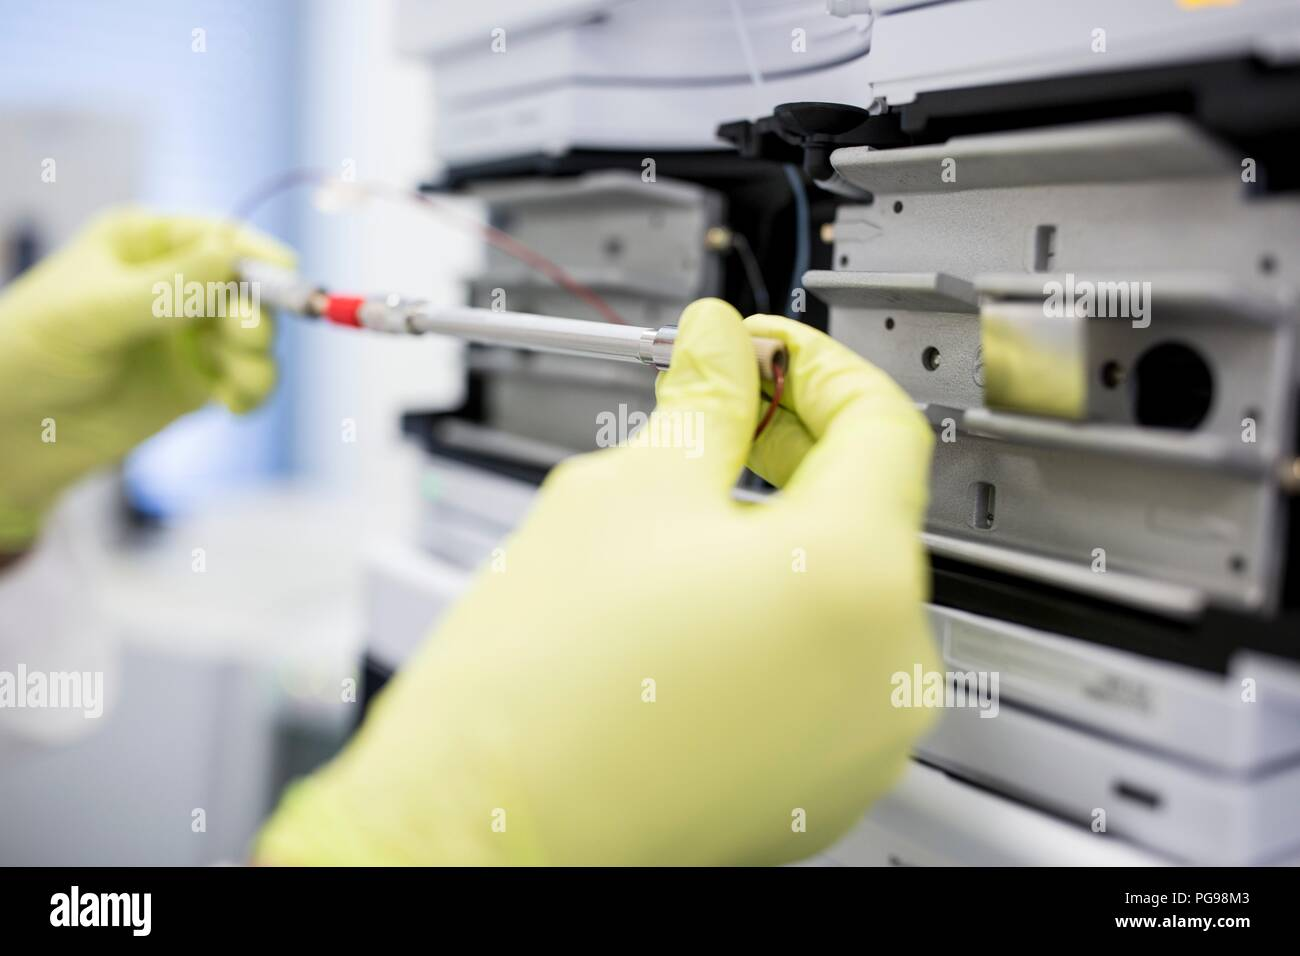 Glass column containing a solution for calibrating a mass spectrometer. Mass spectrometry uses strong magnetic and electric fields to separate the components of a sample by mass and charge. This enables researchers to determine the elemental composition of the sample. Stock Photo